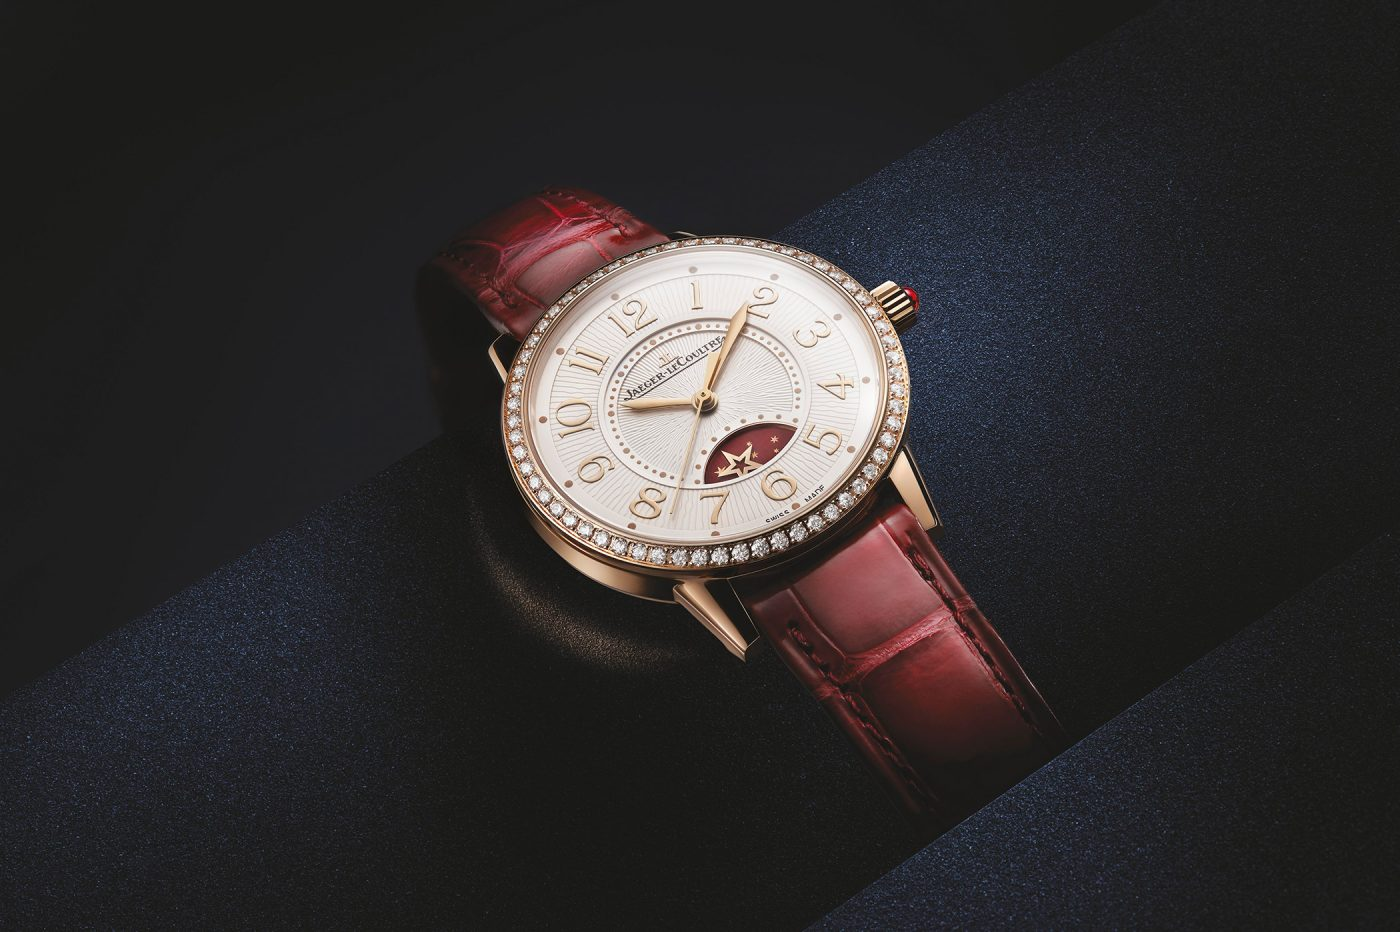 Jaeger-LeCoultre Rendez-Vous Night & Day Medium Tribute to Cinema